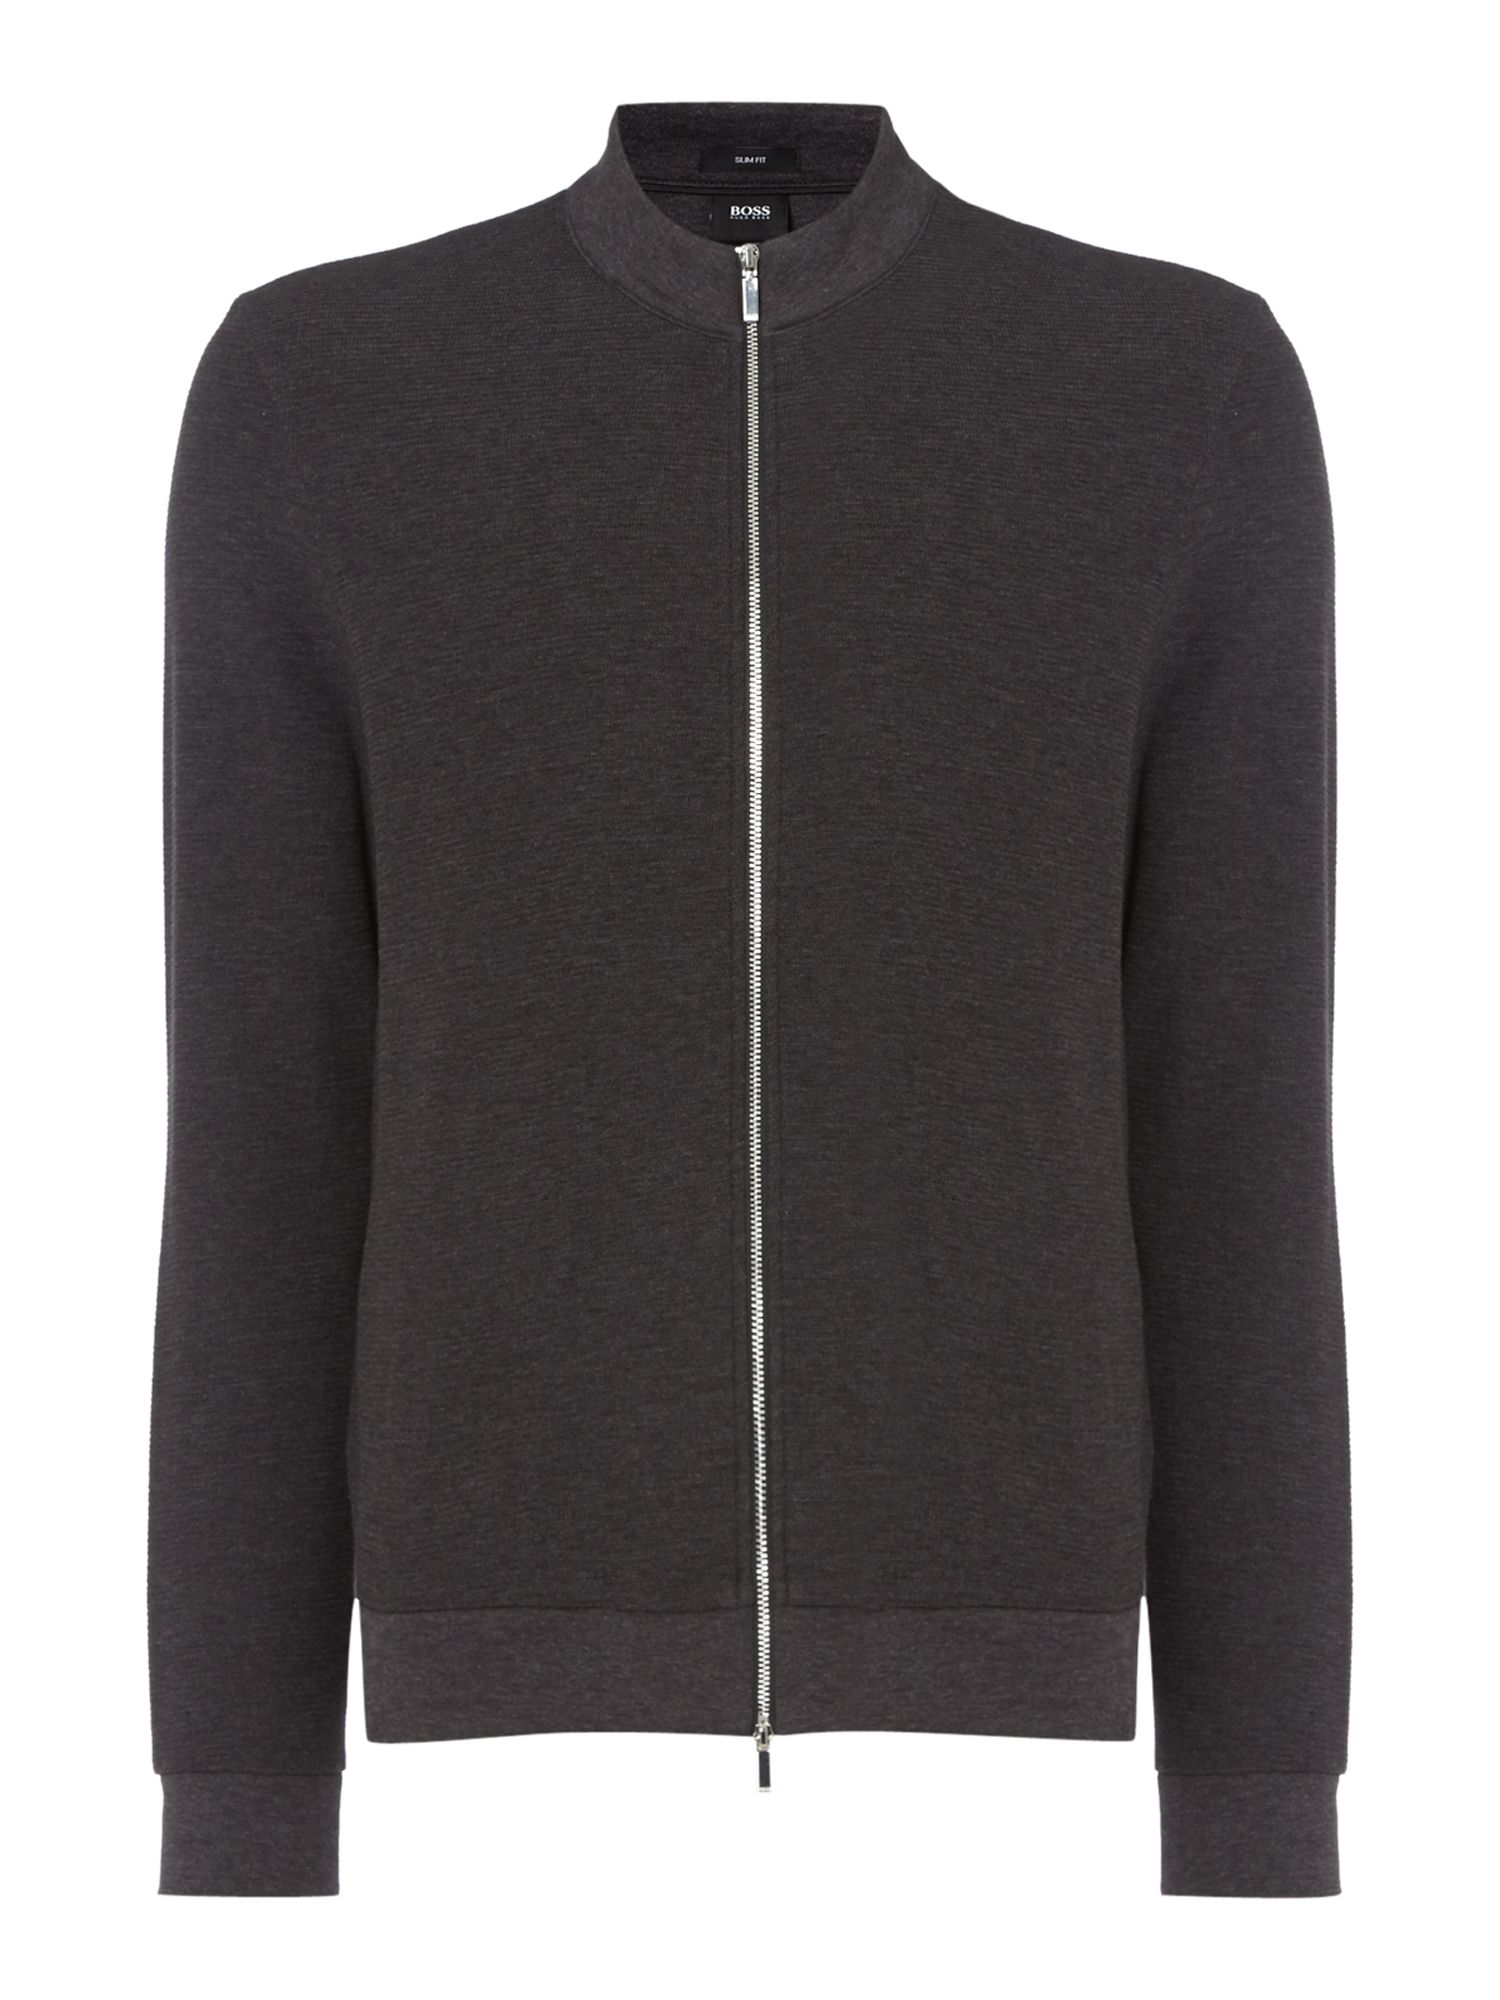 Men's Hugo Boss Zip-Up Funnel Neck Slim Fit Sweat Shirt, Charcoal